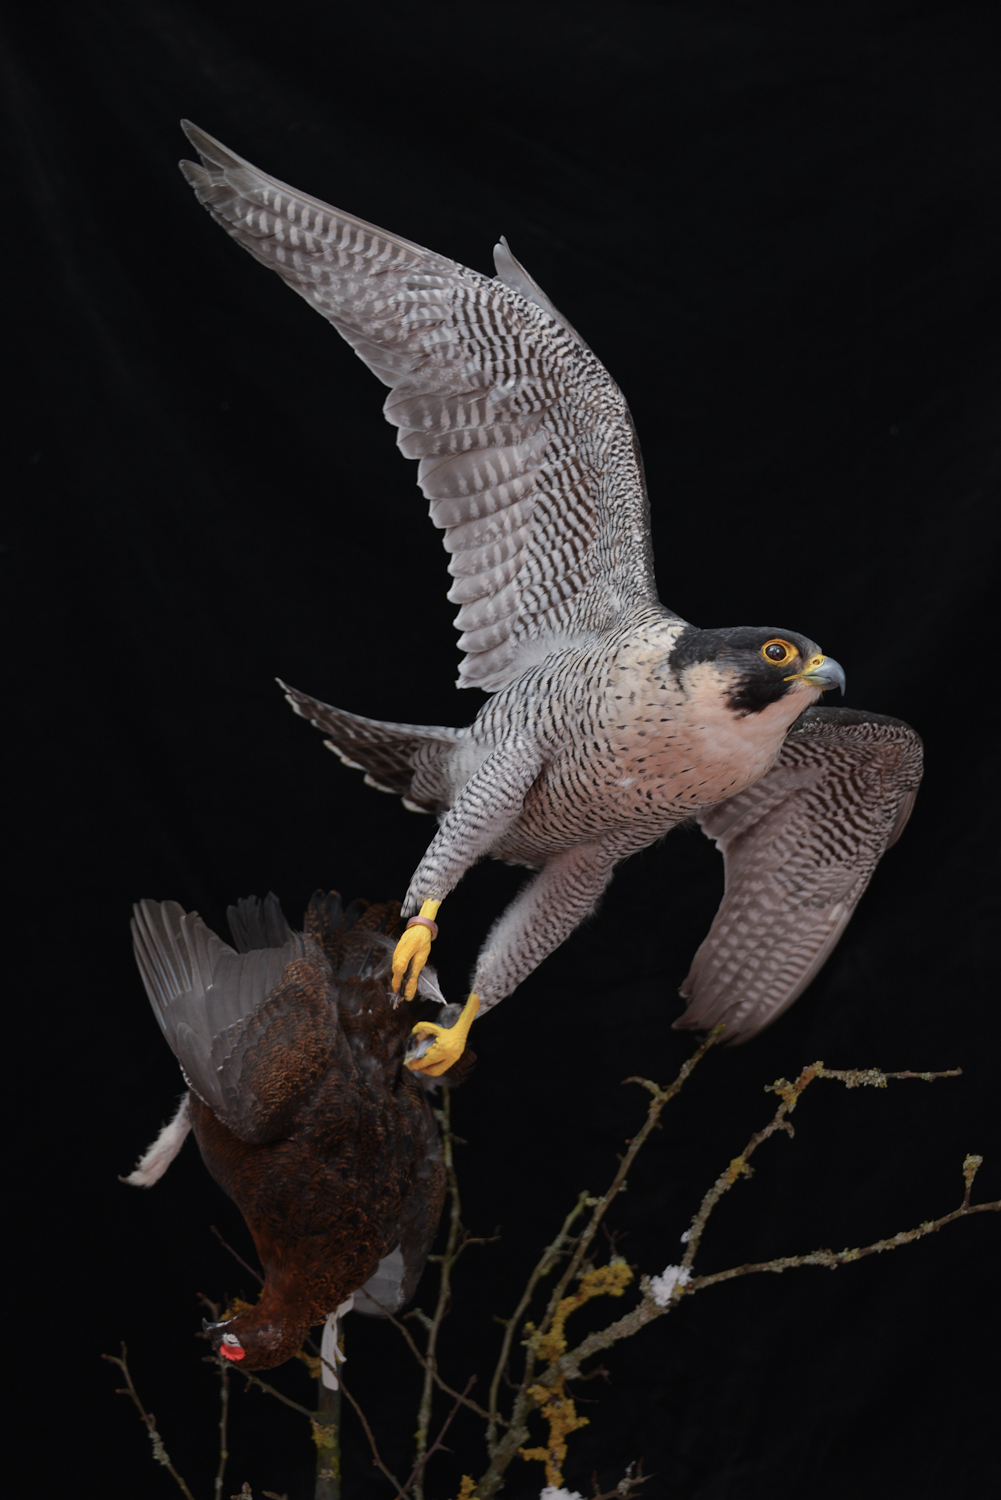 Taxidermy Peregrine Falcon falco peregrinus catching Grouse 2